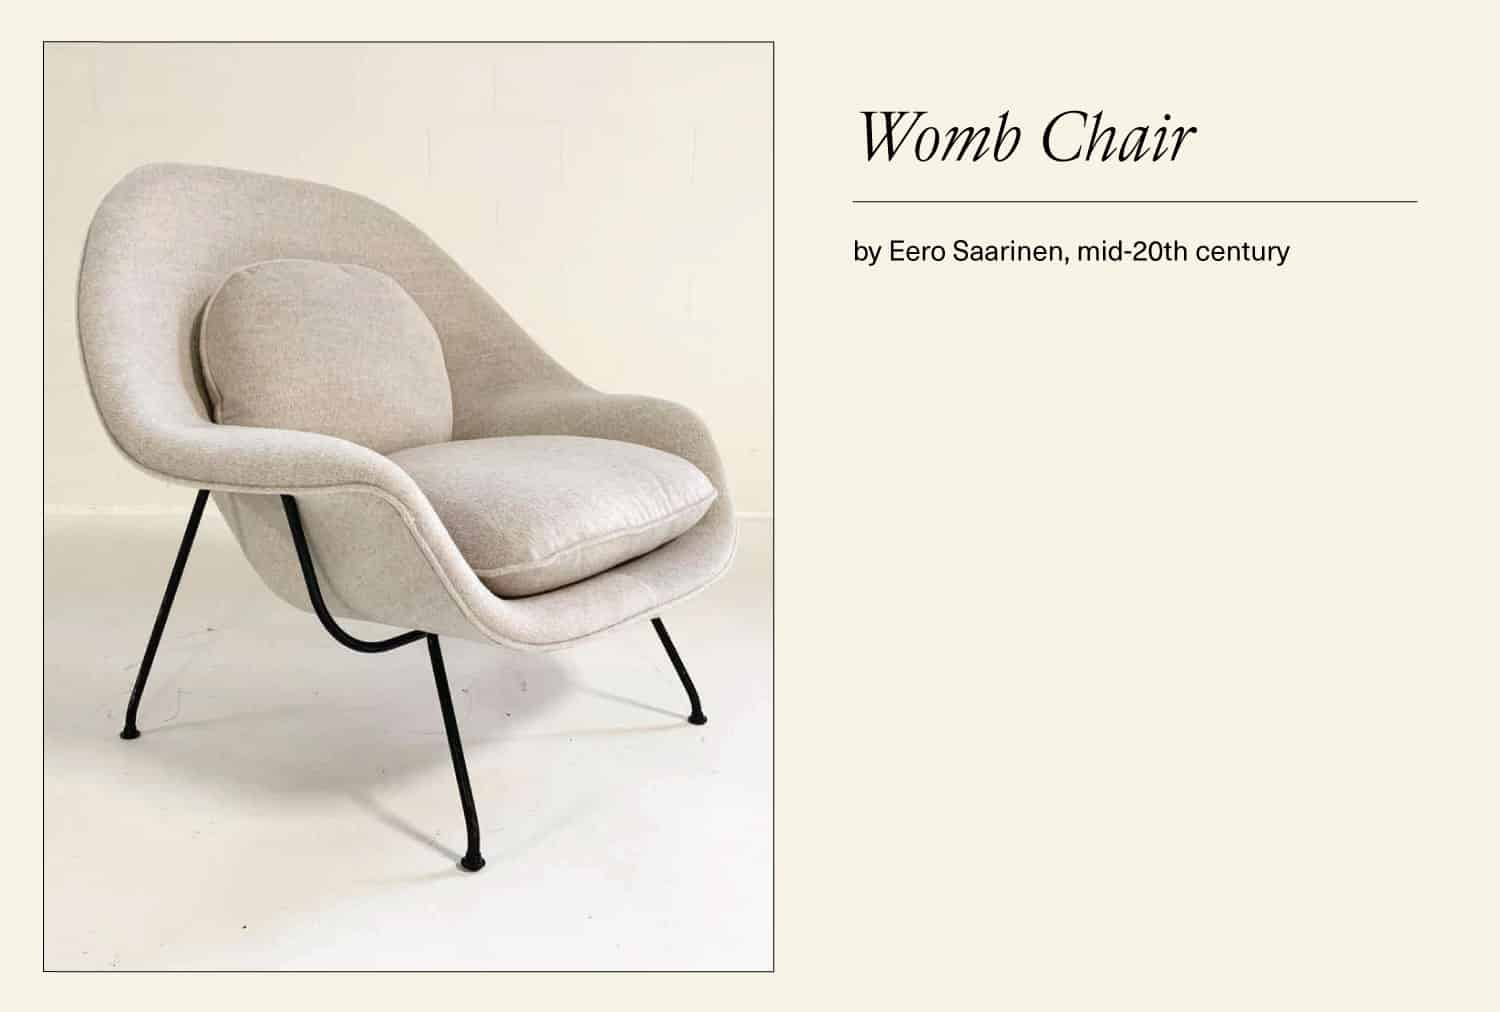 White Womb chair